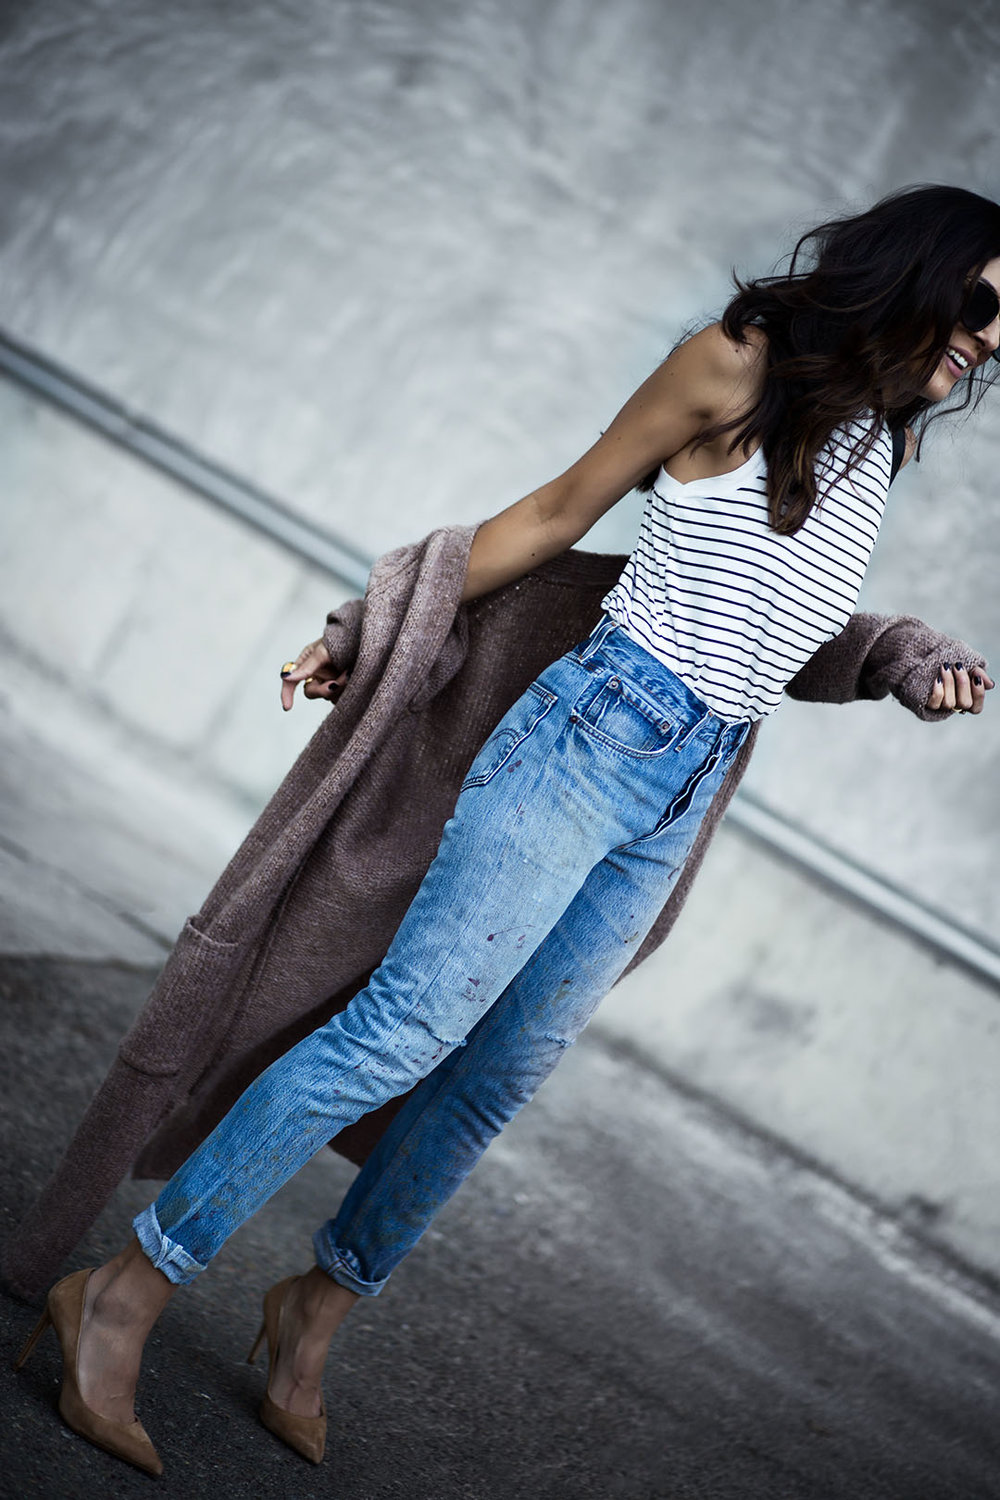 Shop_Redone_Jeans_Saint_Laurent_Bag_Long_Cardigan.jpg